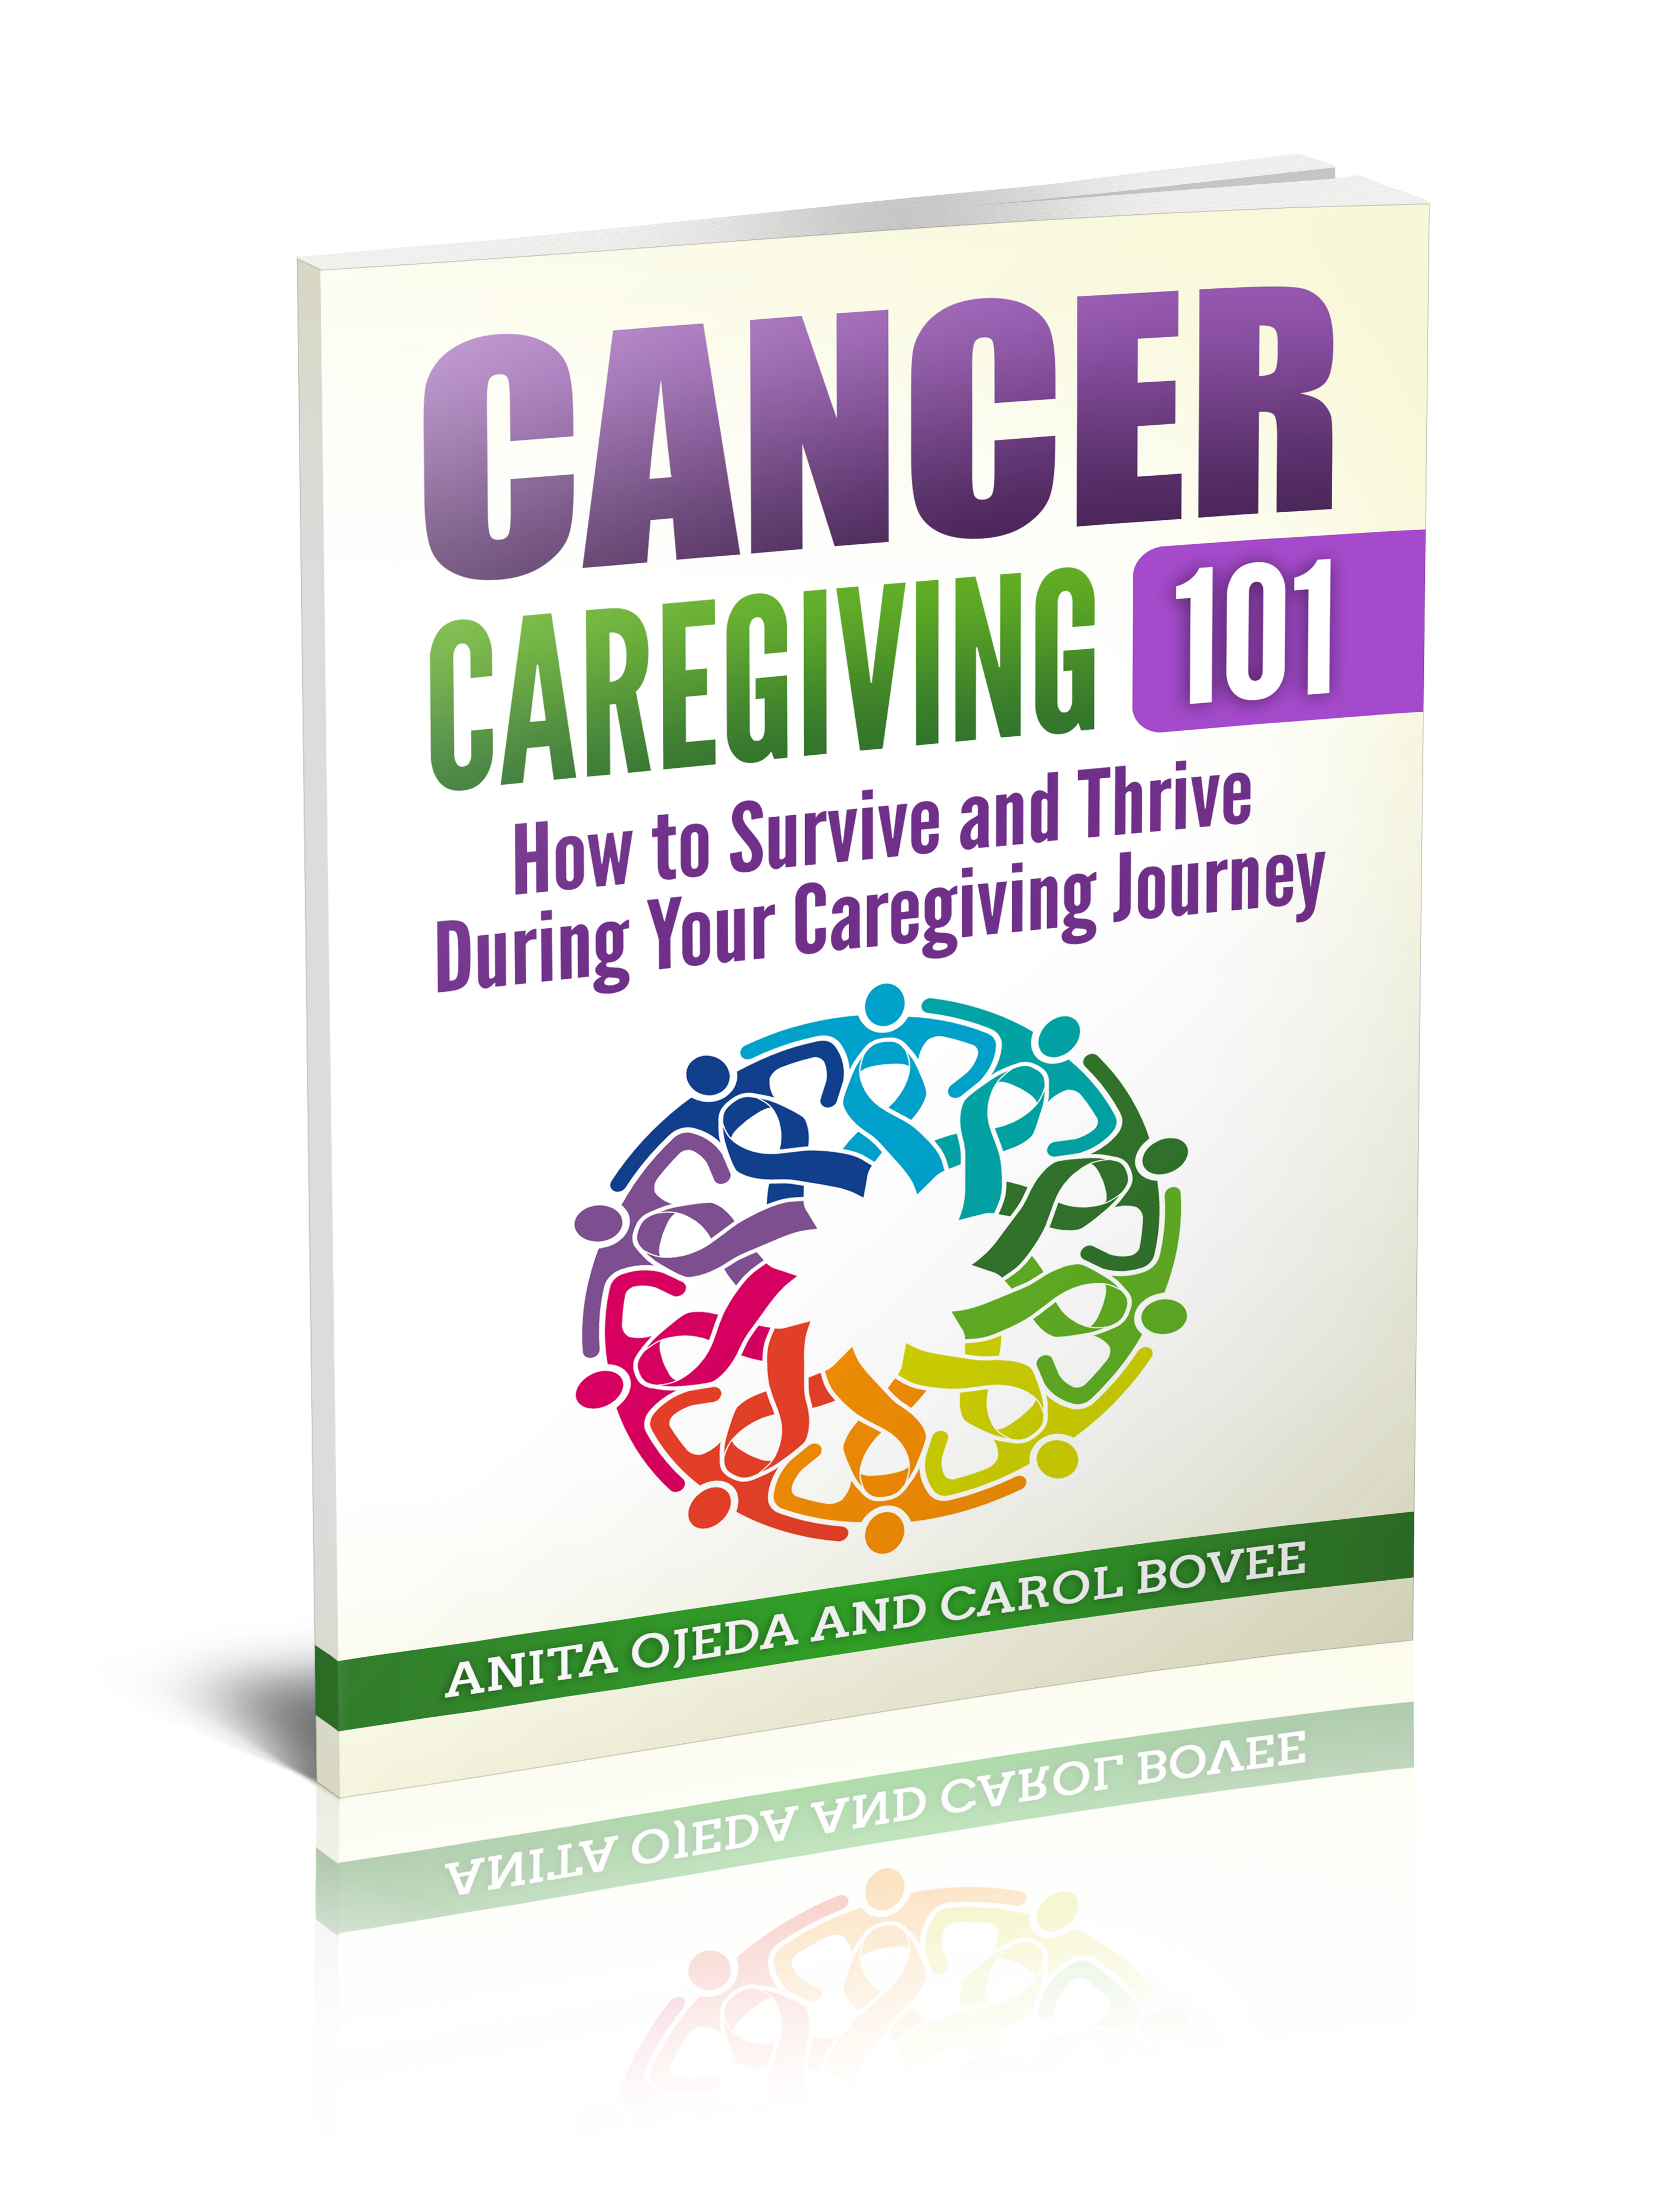 Get your FREE copy of Cancer Caregiving 101: How to Survive and Thrive  During Your Caregiving Journey